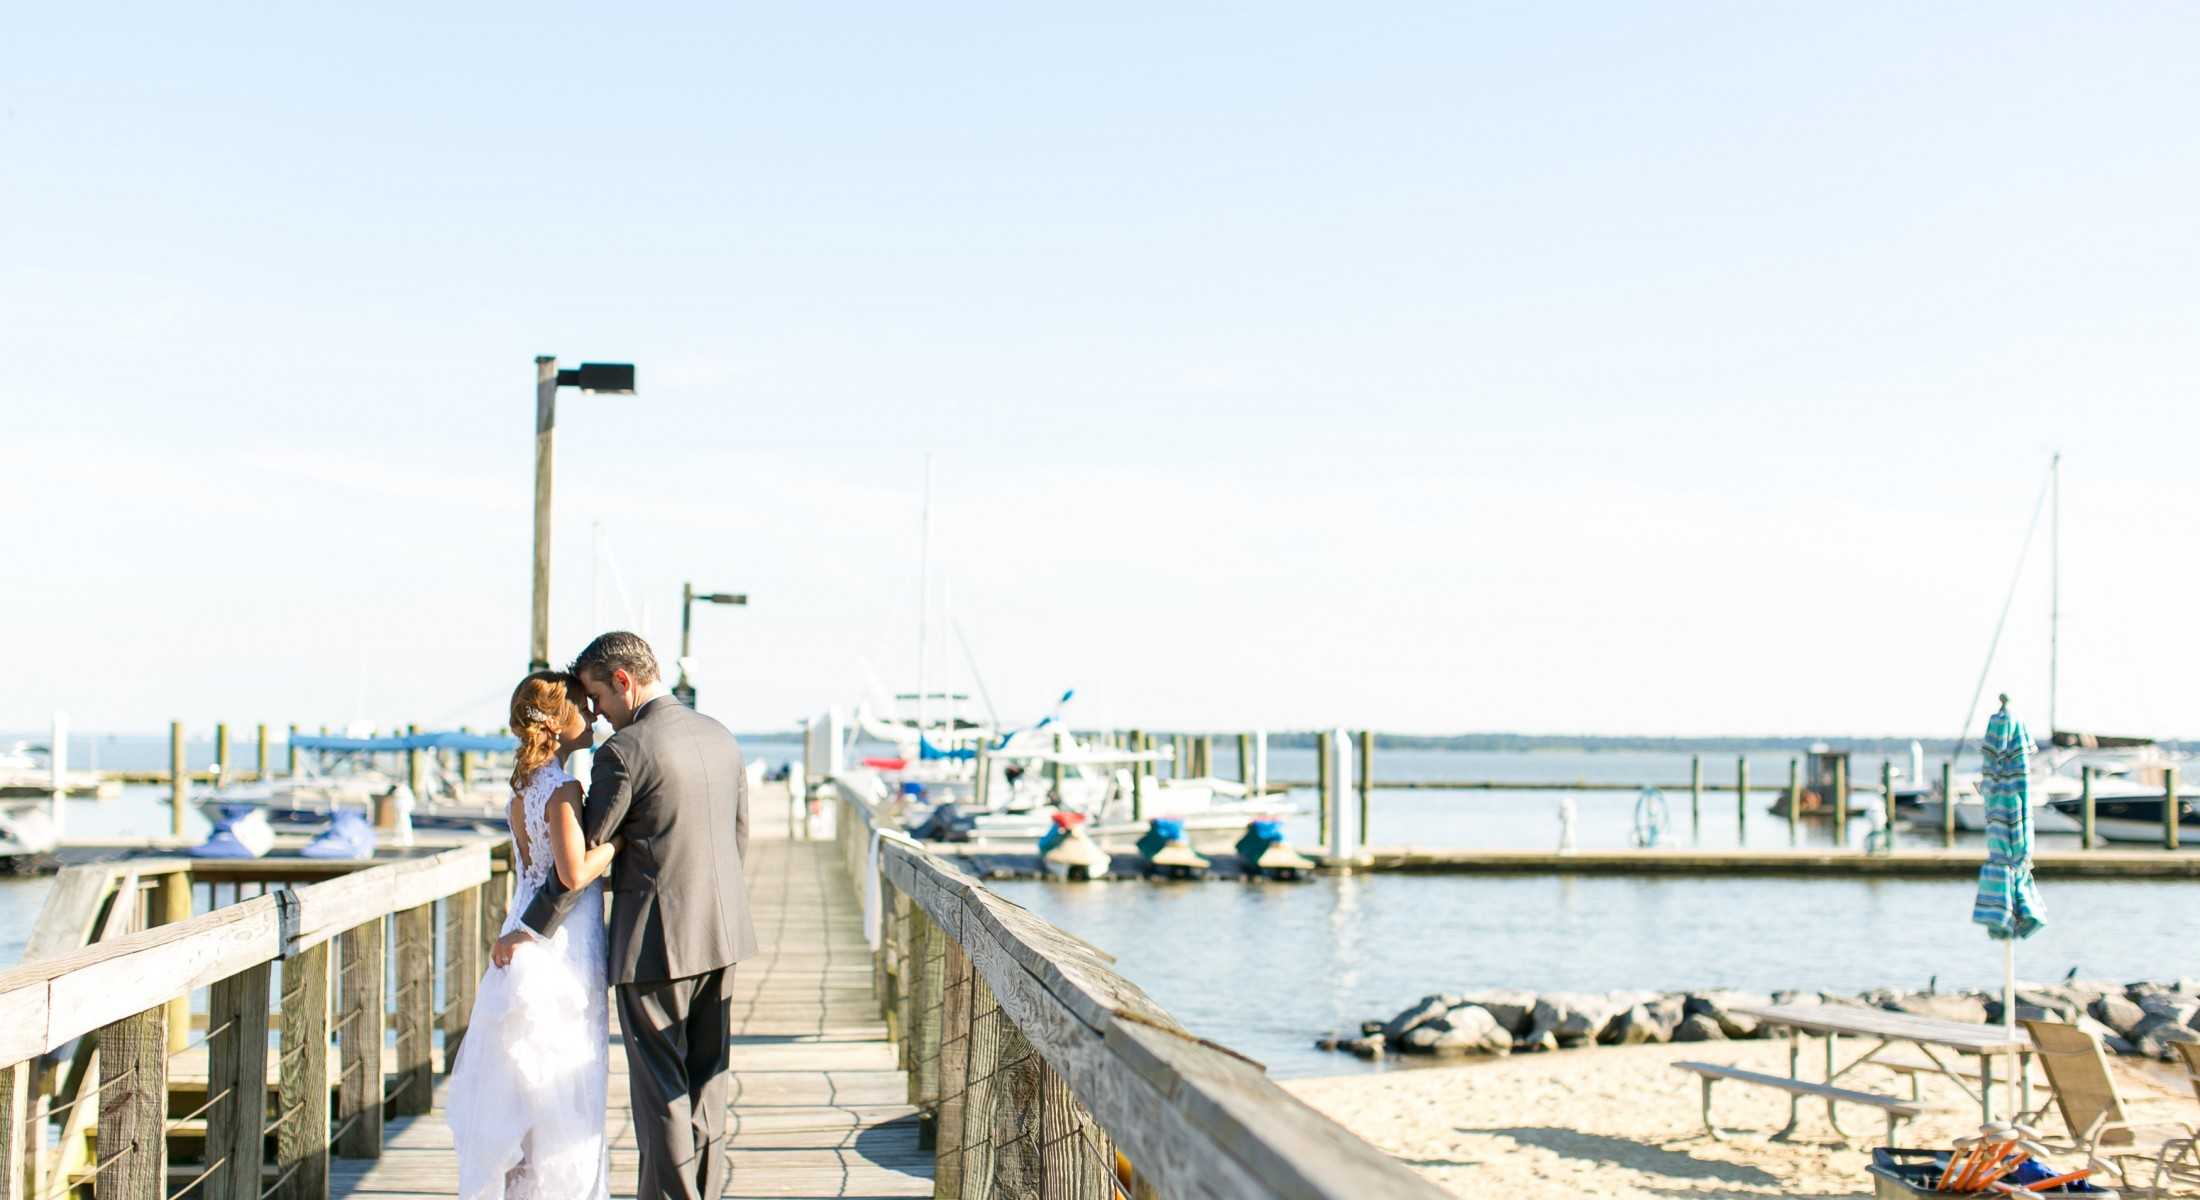 View More: http://jenandashley.pass.us/fetznerwedding